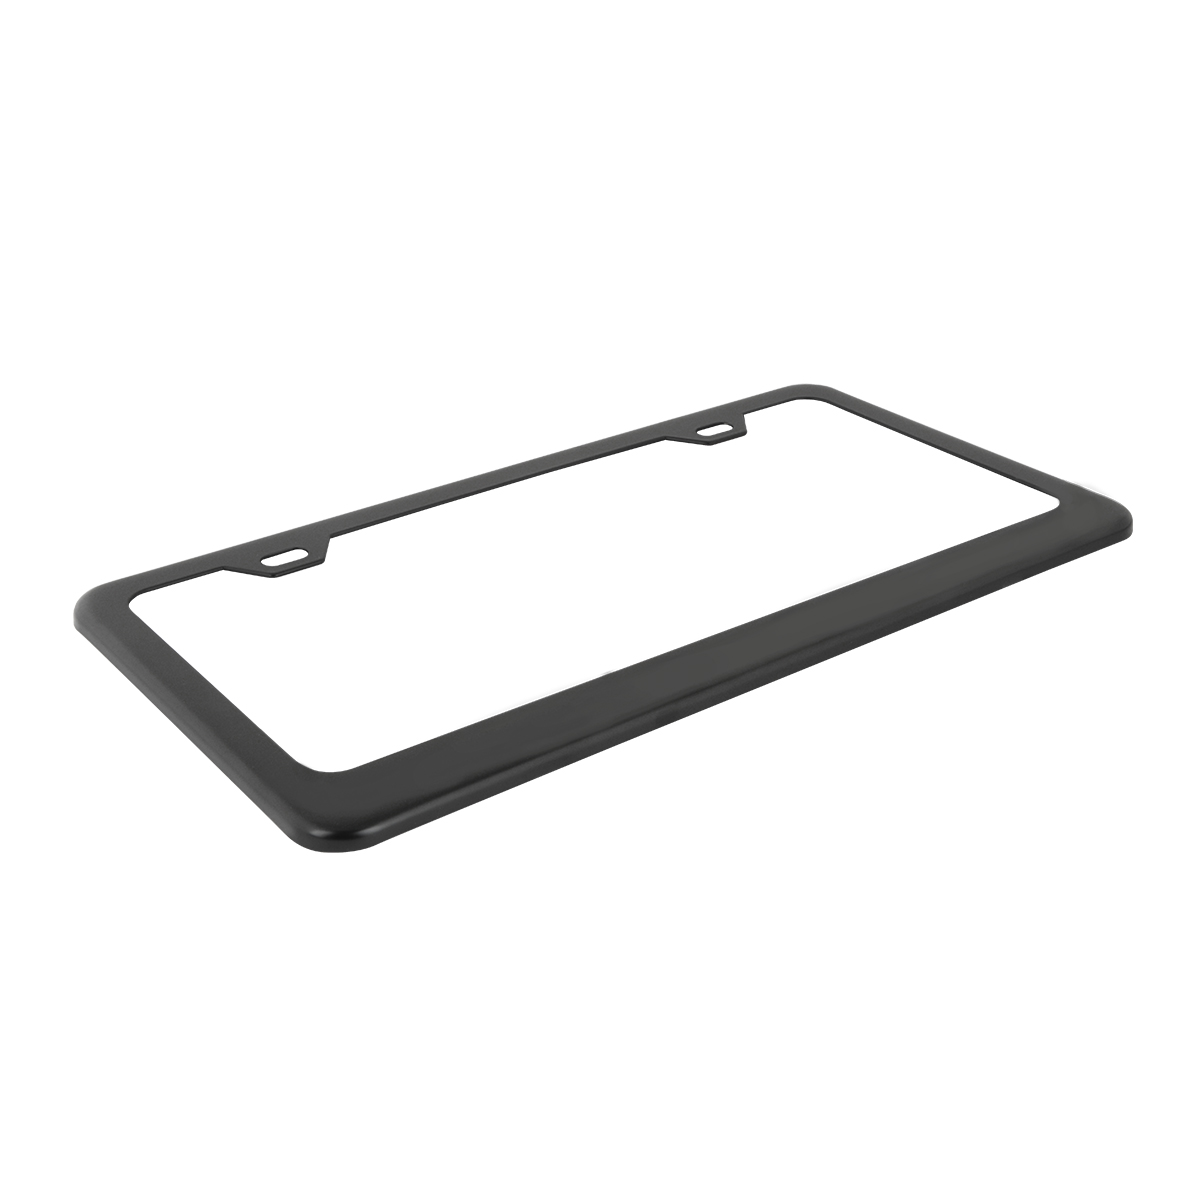 60439 Flat/Matte Plain Black 2 Hole License Plate Frame - Top View